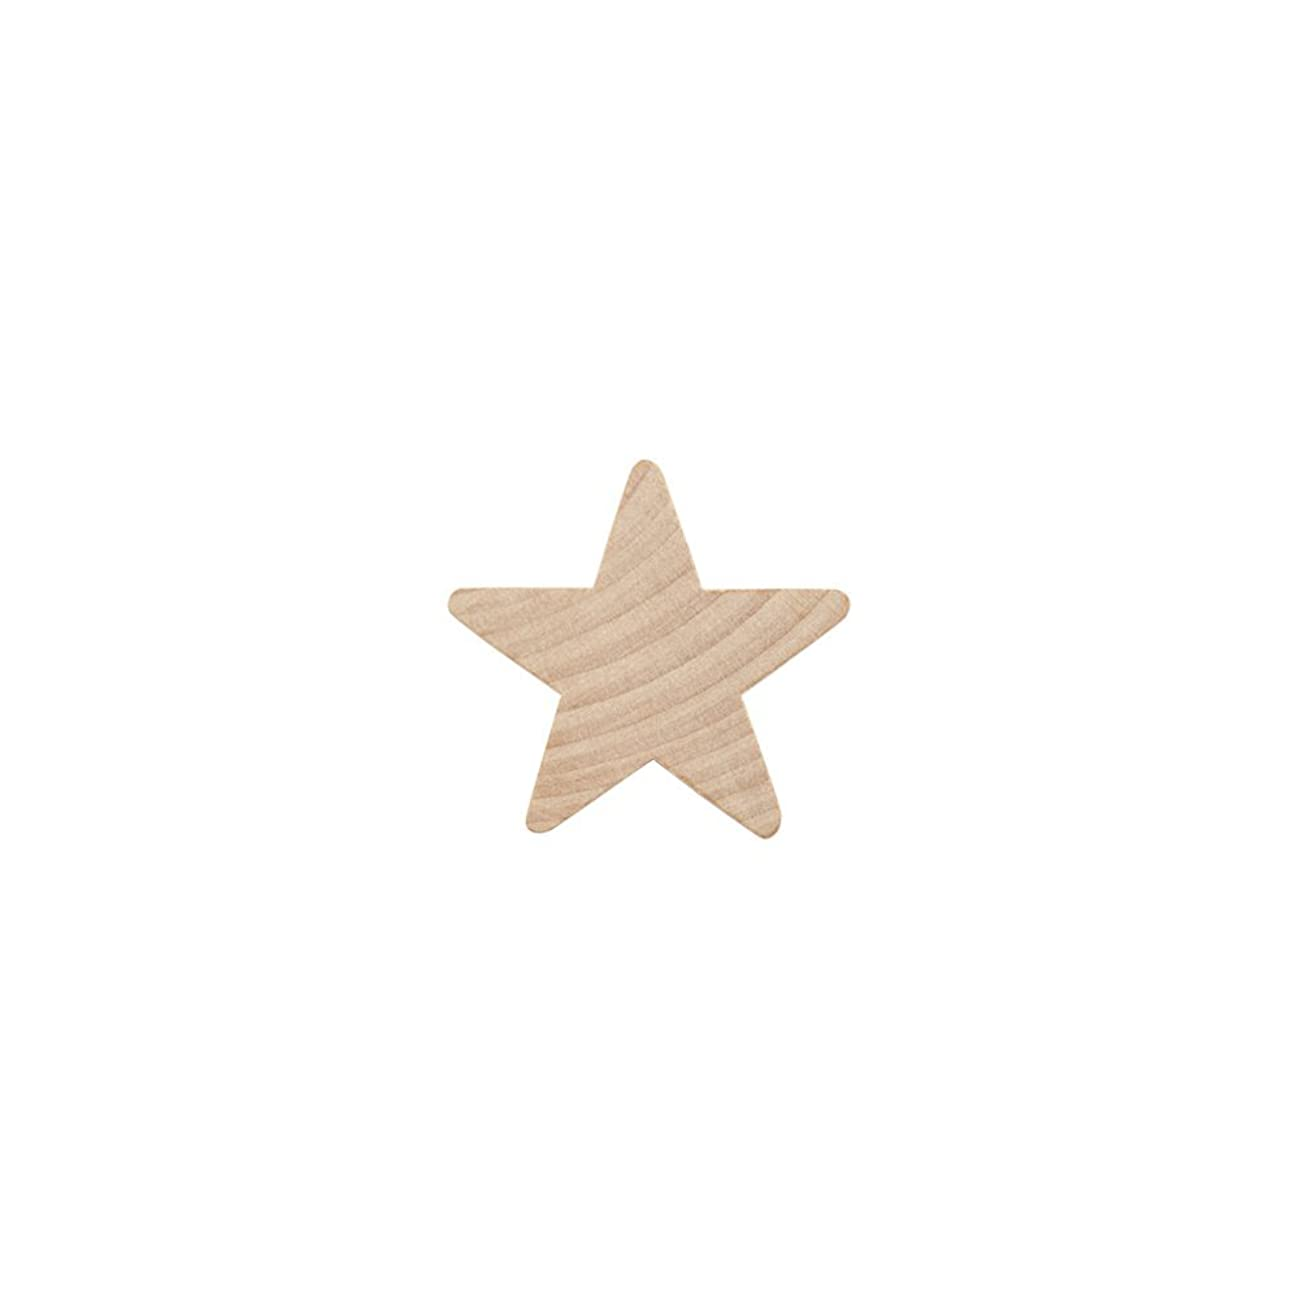 "1"" Wood Star, Natural Unfinished Wooden Star Cutout Shape (1 Inch) - Bag of 500"